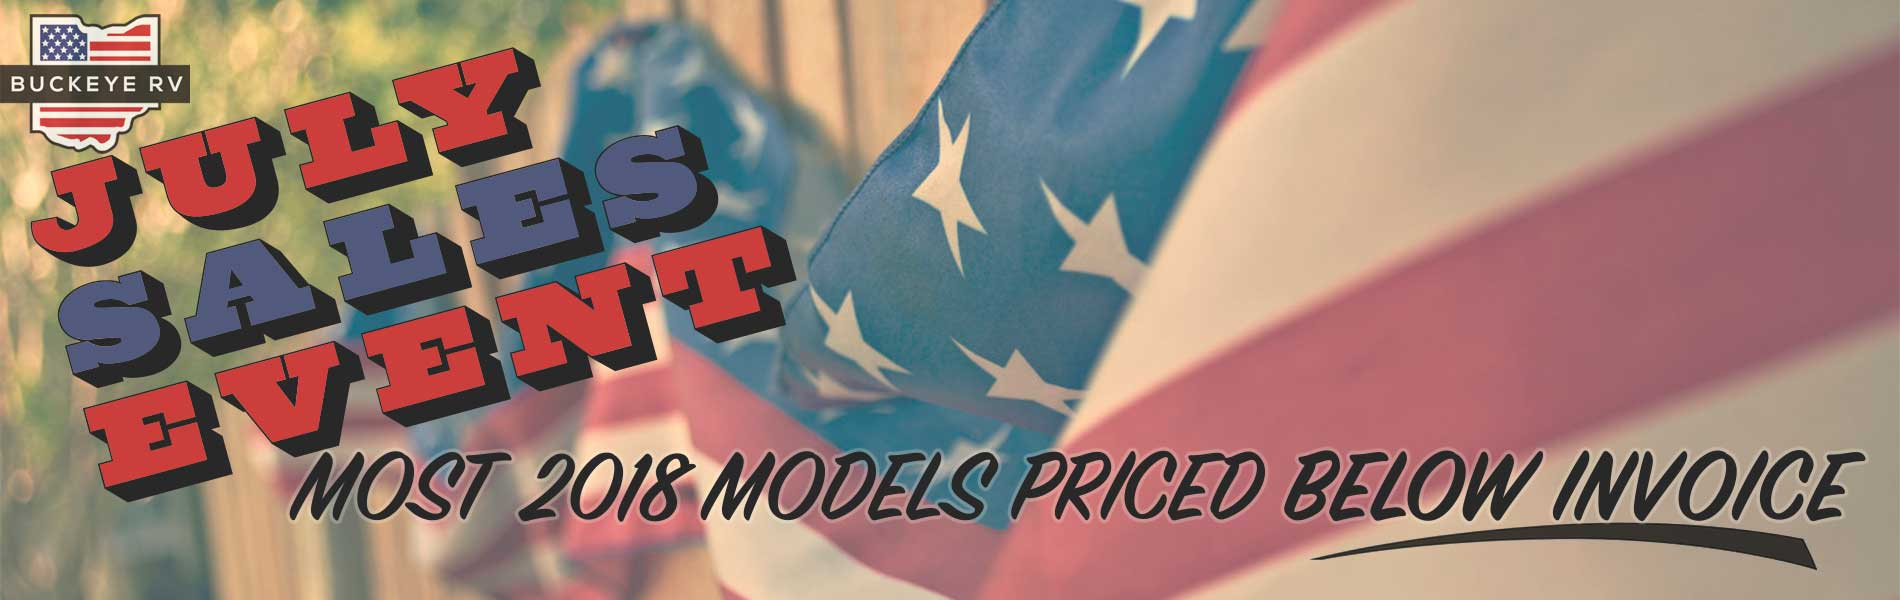 Most 2018 Model RVs For Sale Below Invoice